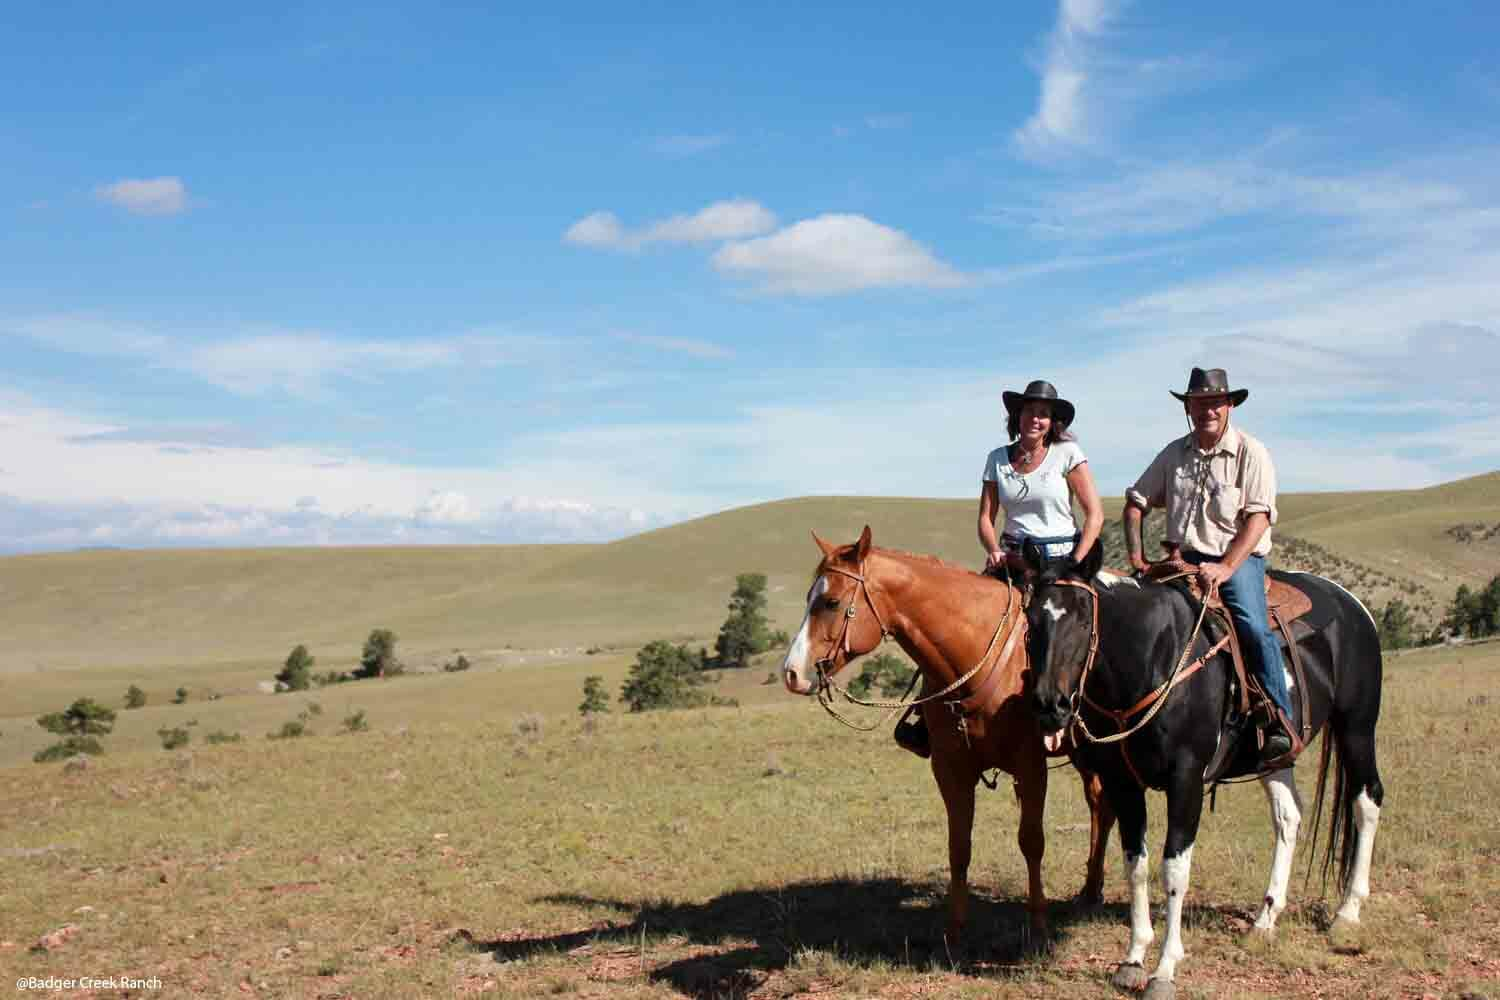 Badger Creek Ranch Dude Ranches the Experienced Rider